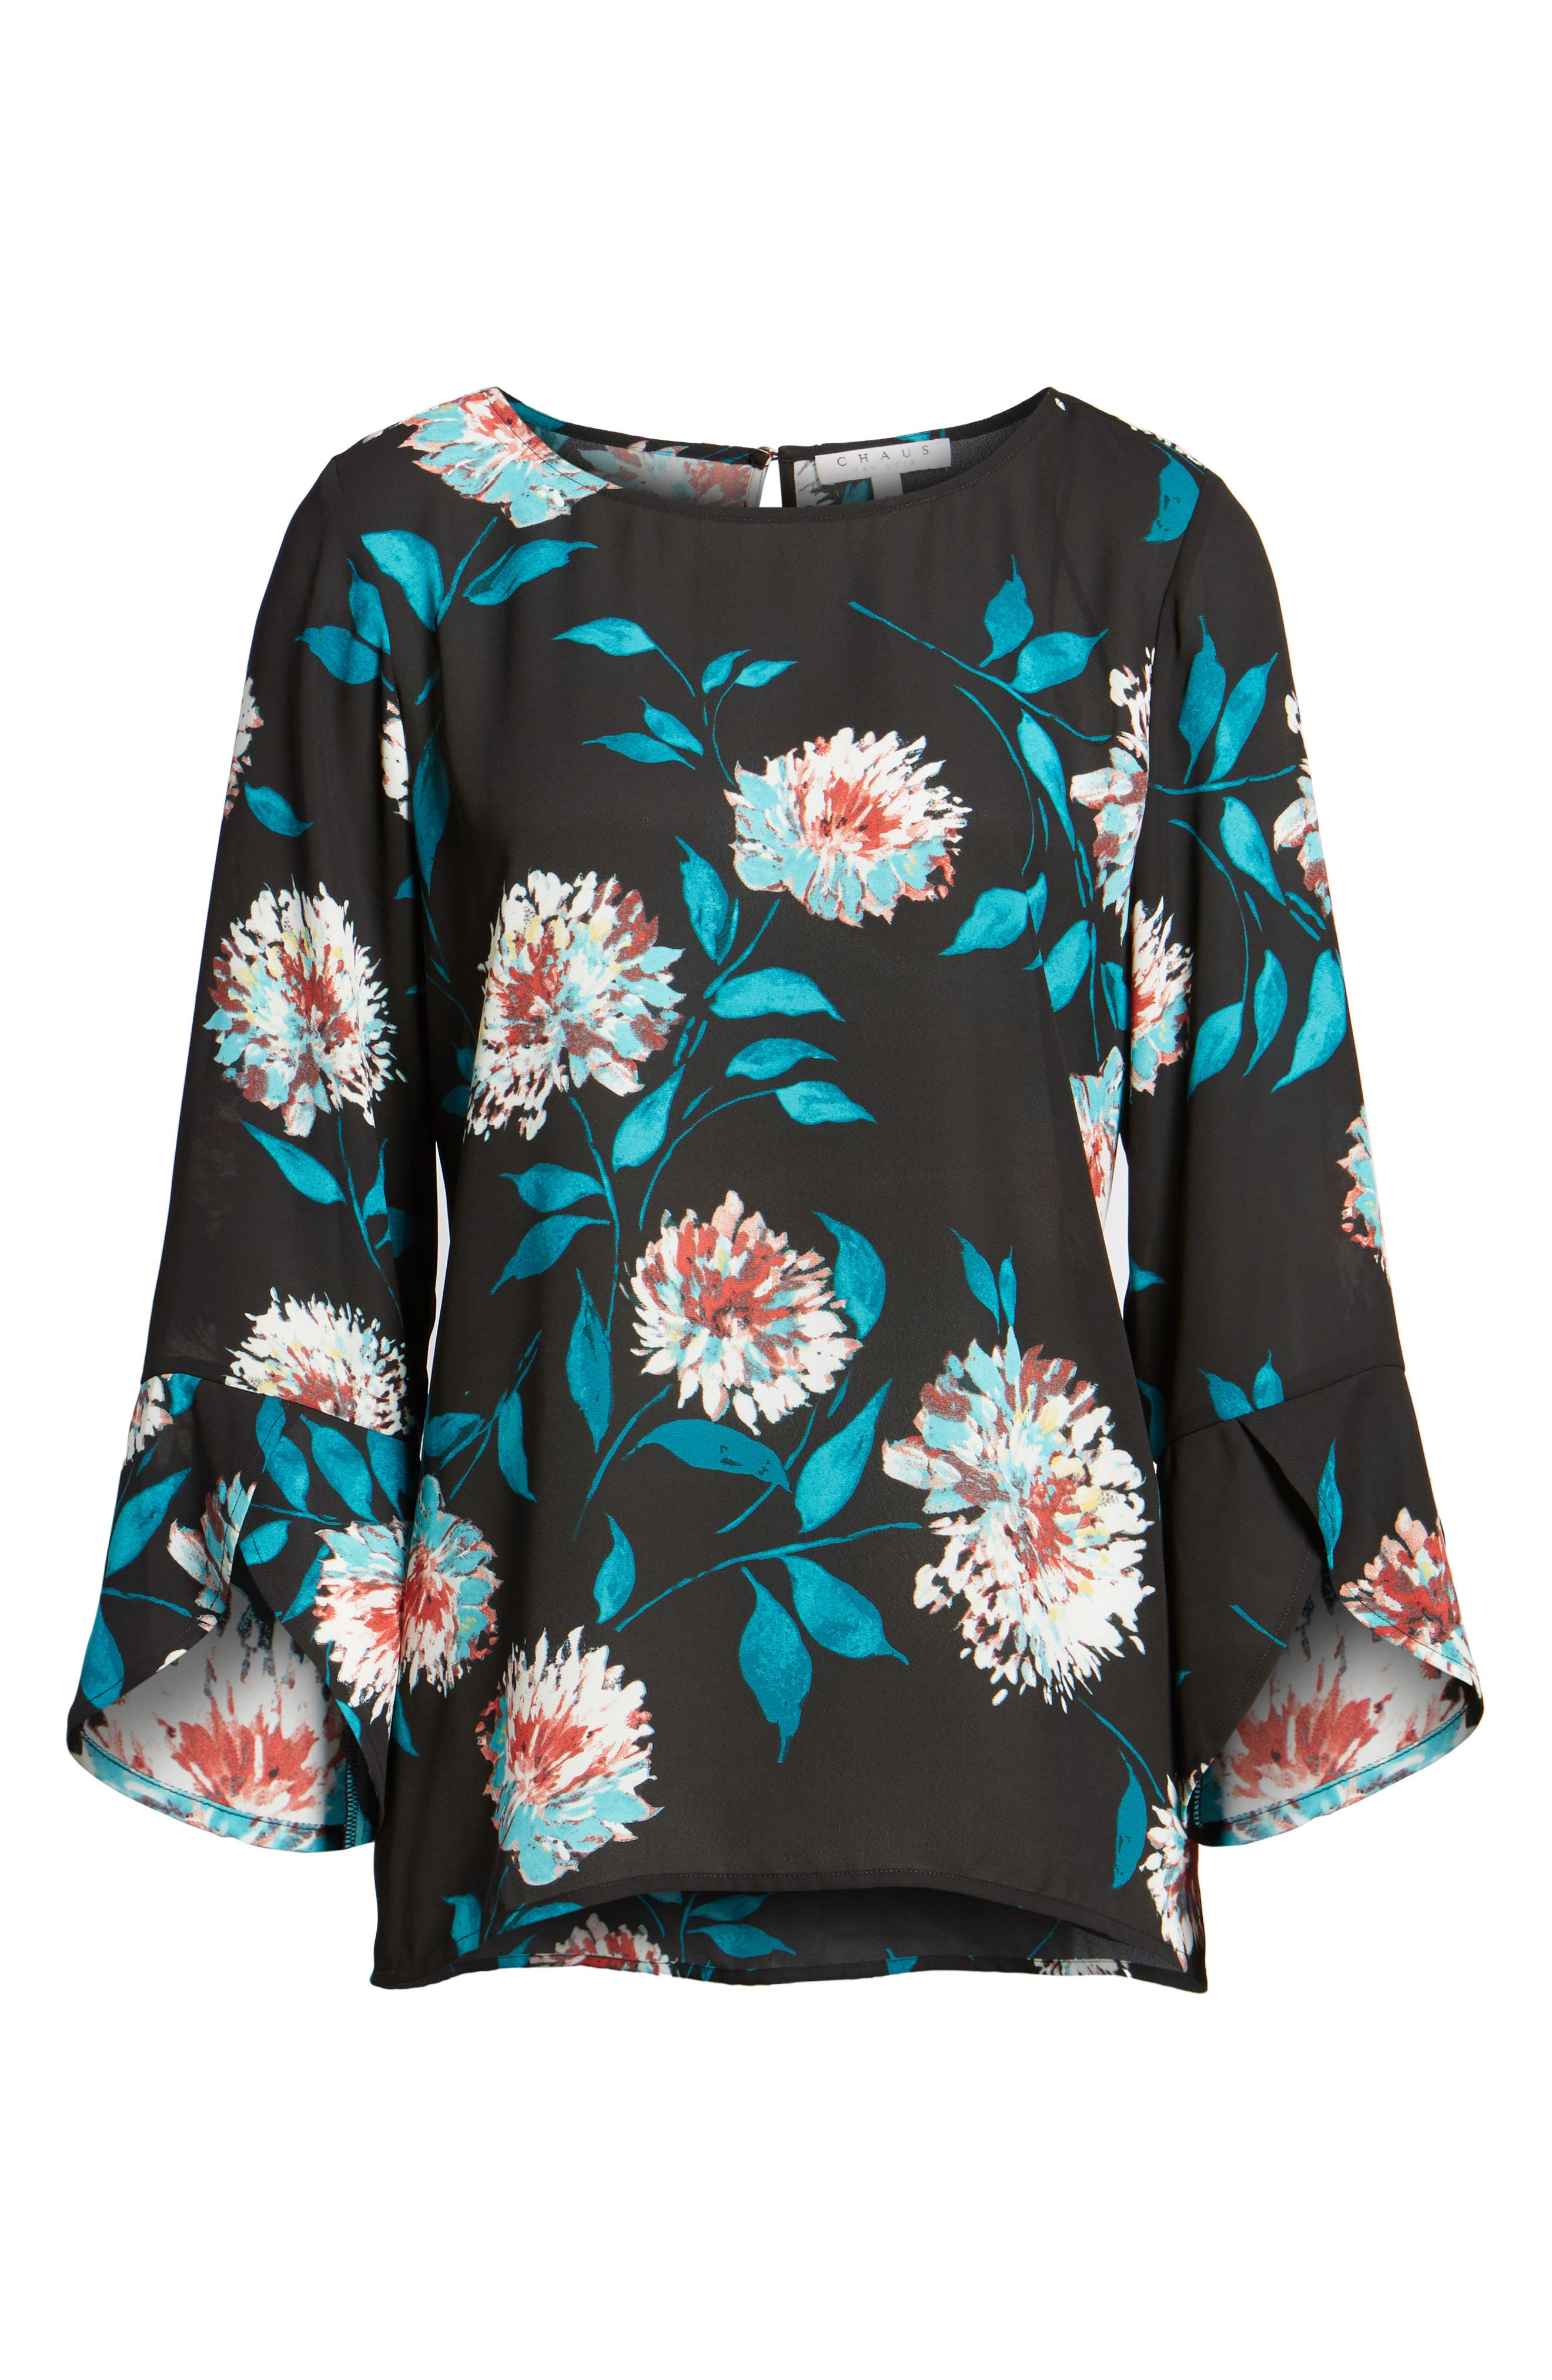 Kyoto Blossoms Bell Sleeve Blouse,                             Alternate thumbnail 6, color,                             006